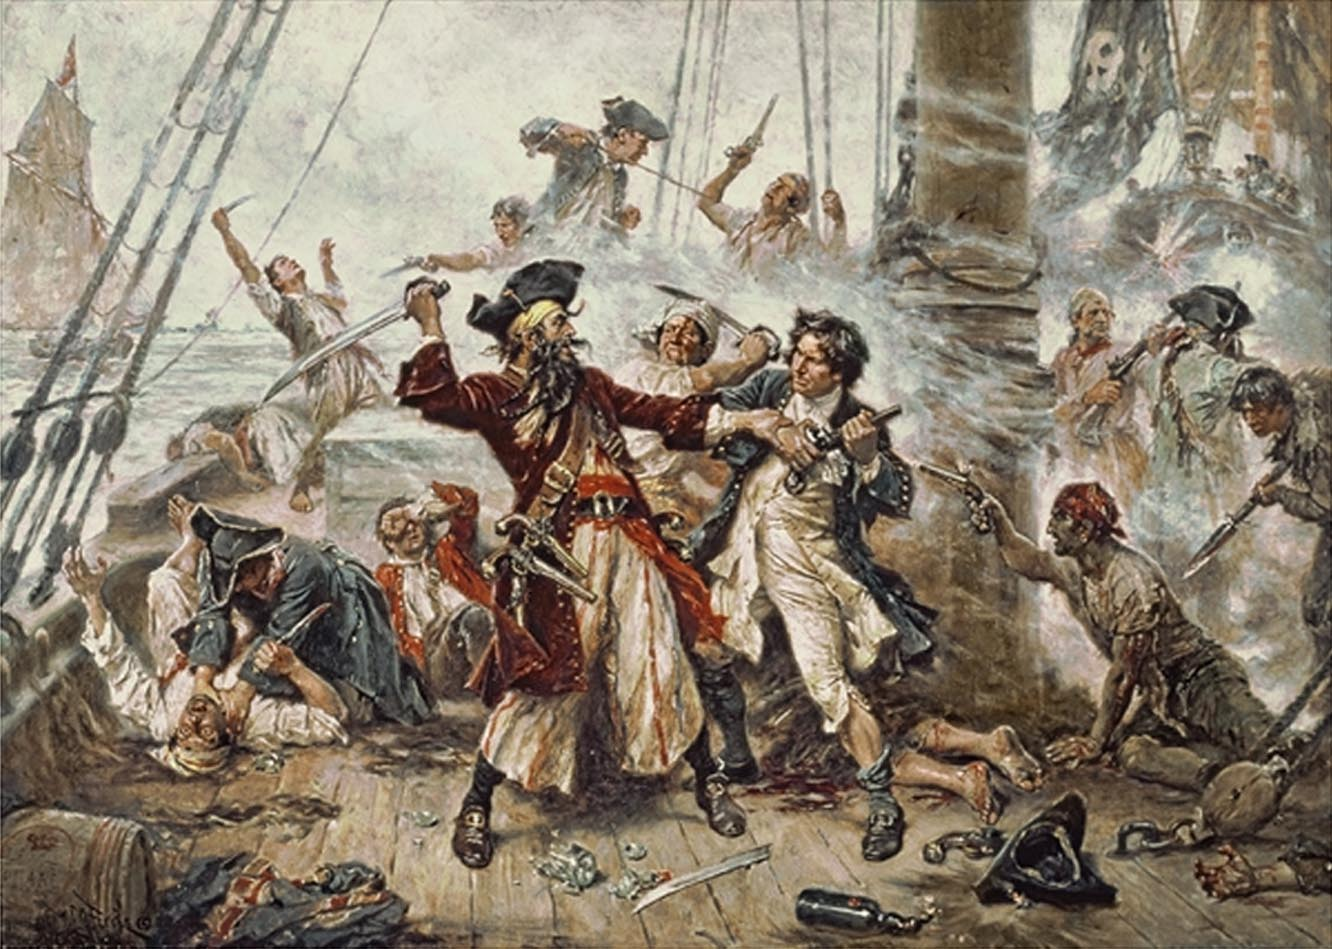 The Capture of Blackbeard 1718, depicting the battle between Blackbeard the Pirate and Lieutenant Maynard in Ocracoke Bay